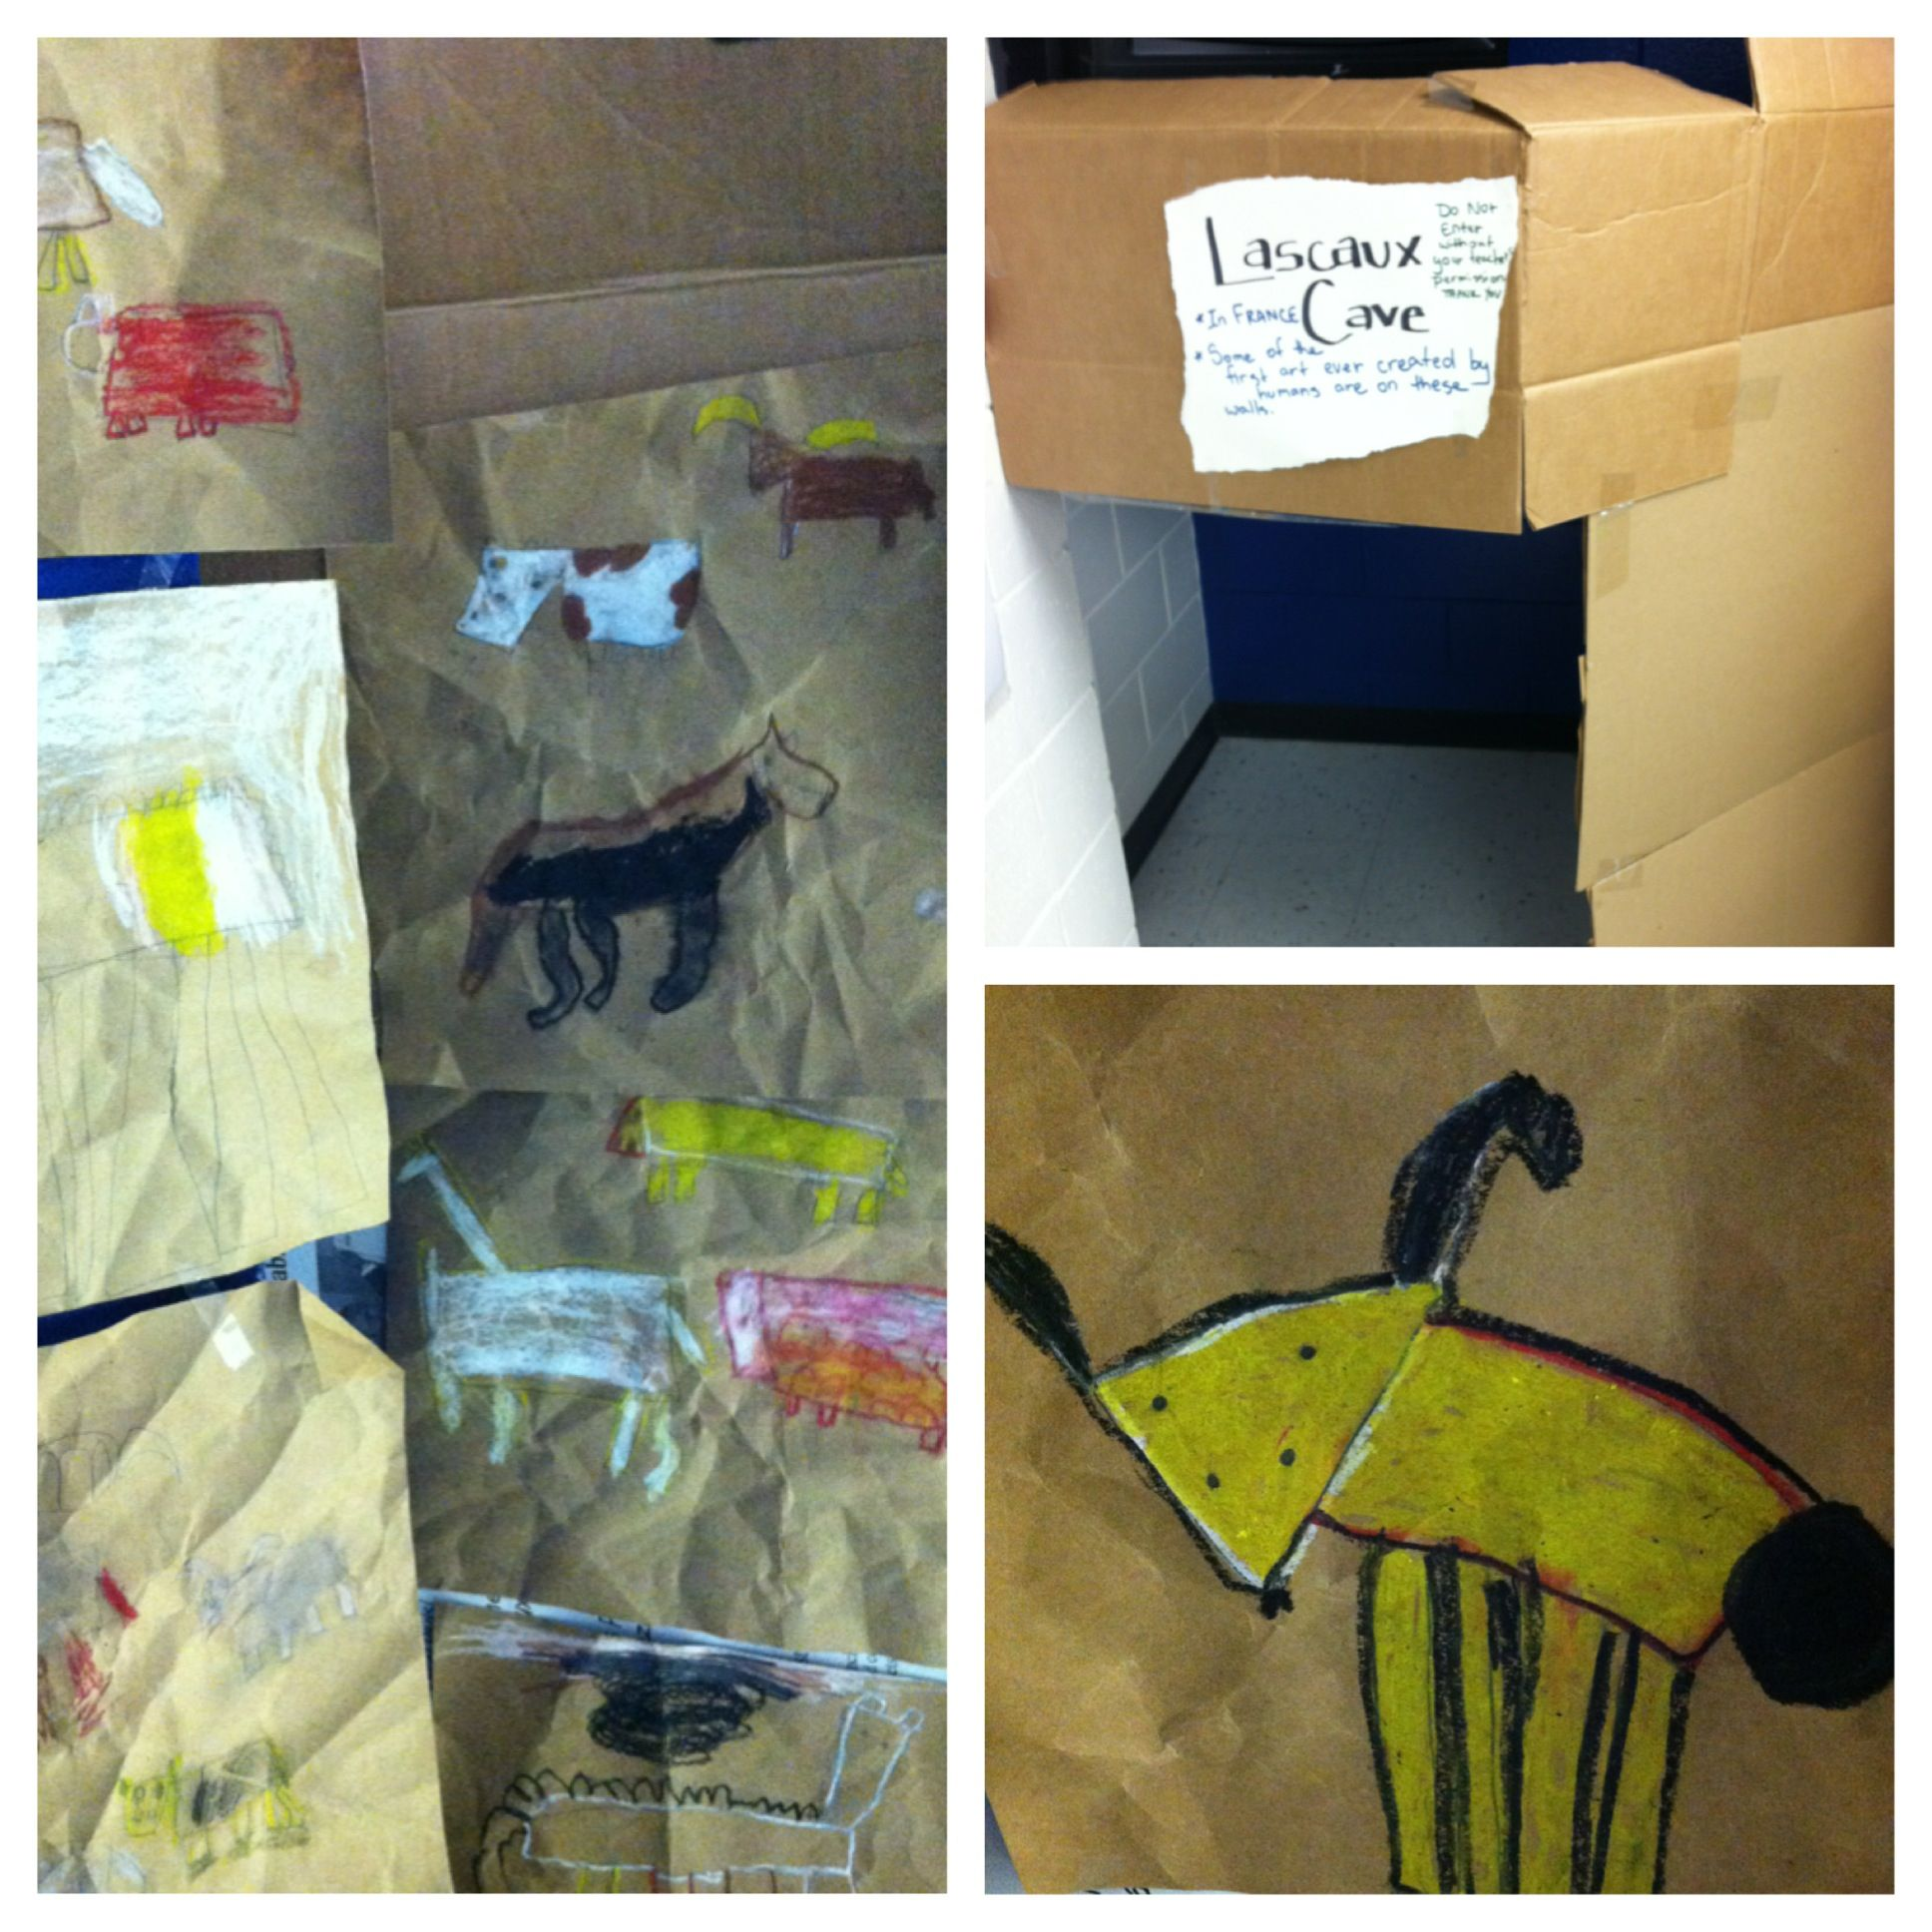 Lascaux Cave Lesson Build A Mini Cave Out Of Card Board In The Room And Hang The Students